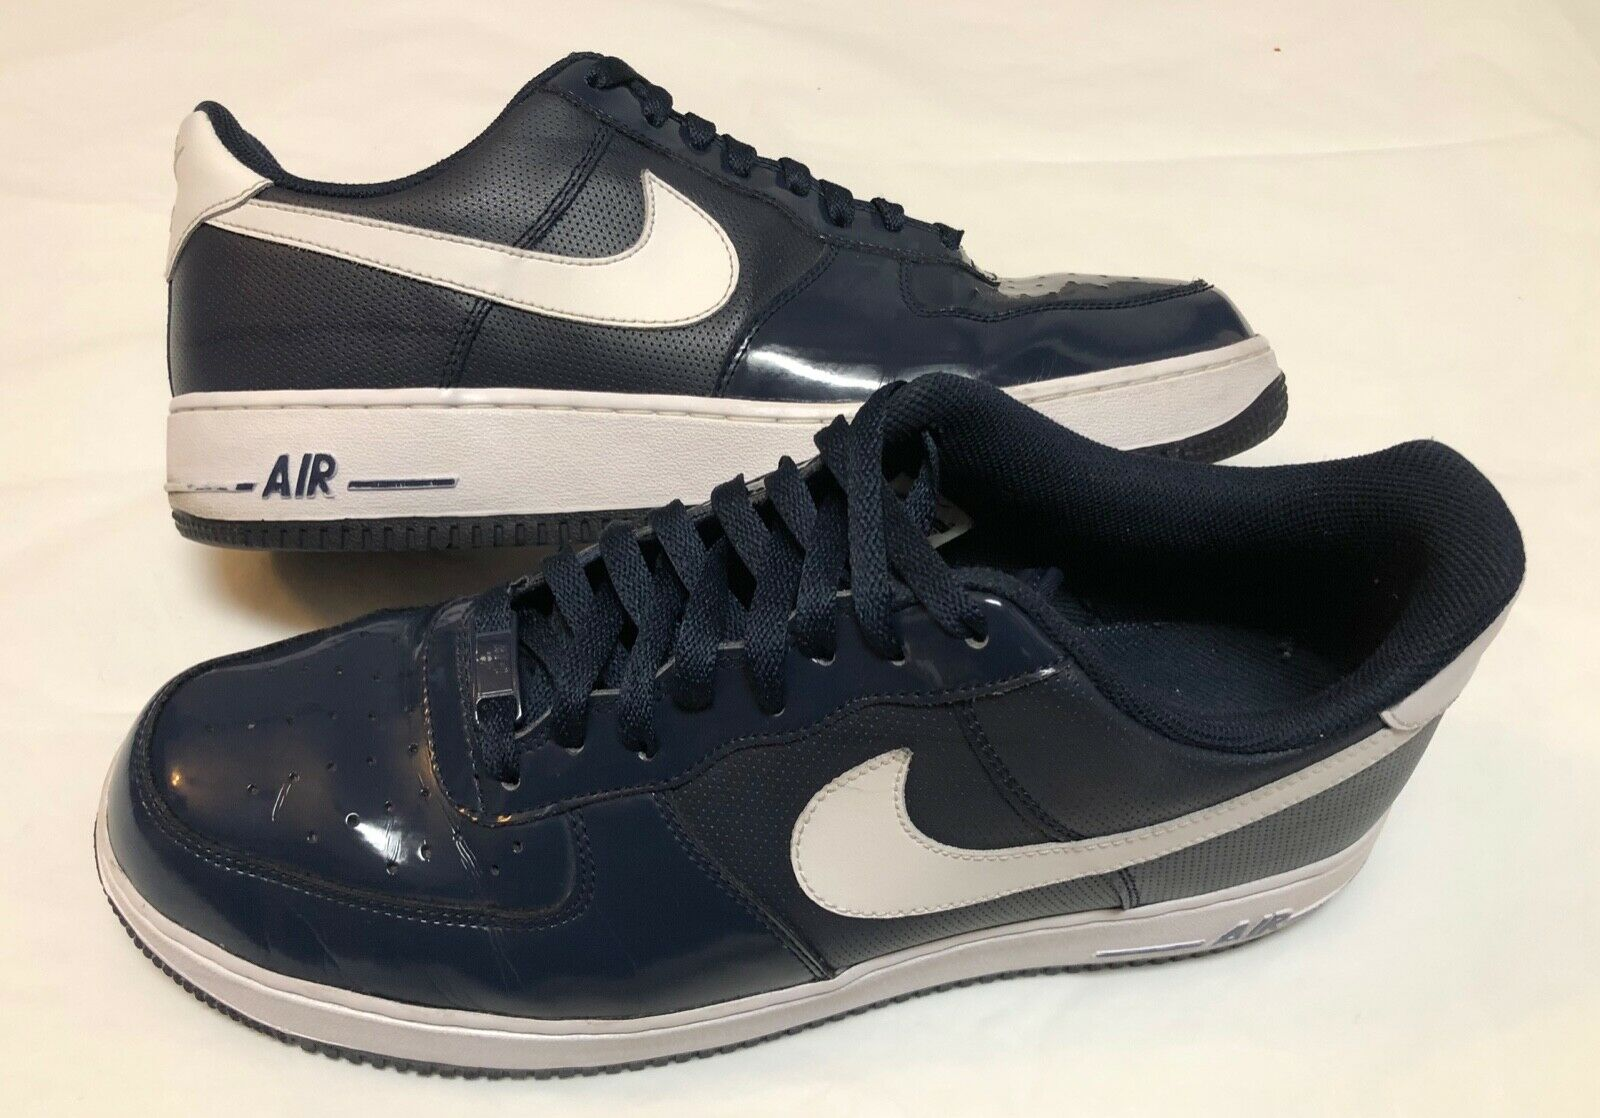 Nike Air Force 1 Navy bluee Size 12 Leather Patent Leather Classic Athletic shoes